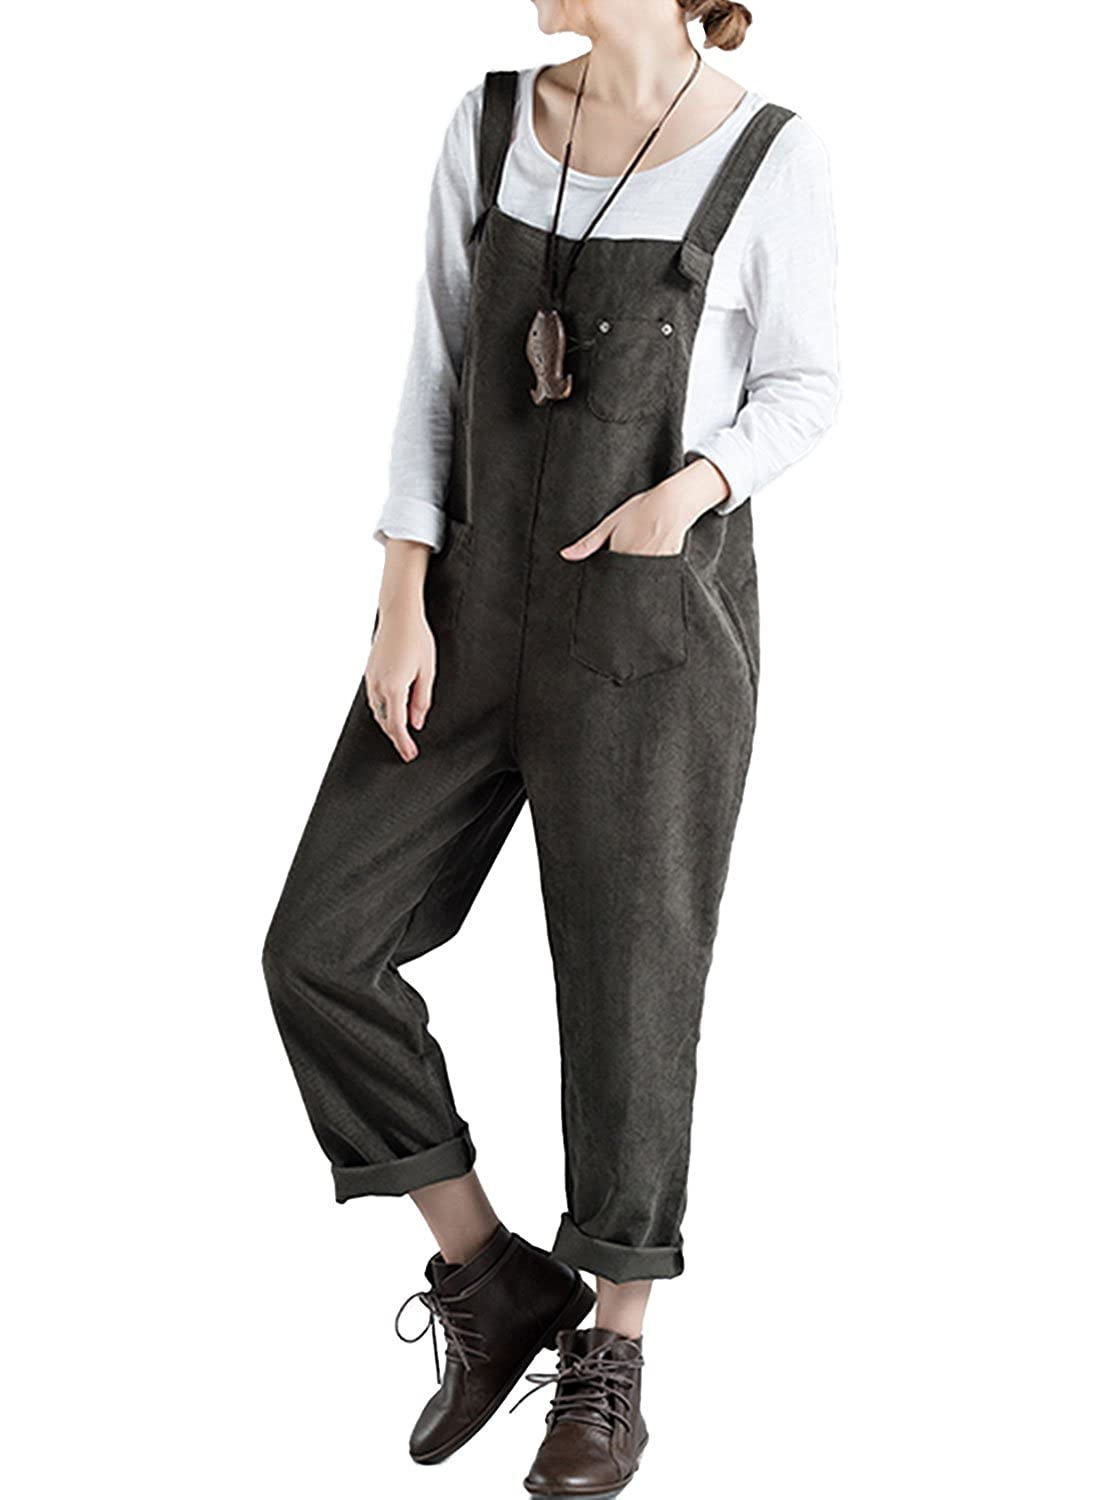 LEO BON Womens Soild Color Simple Pattern Overalls Jumpsuits Work Utility Coveralls KF-LSZYF-090